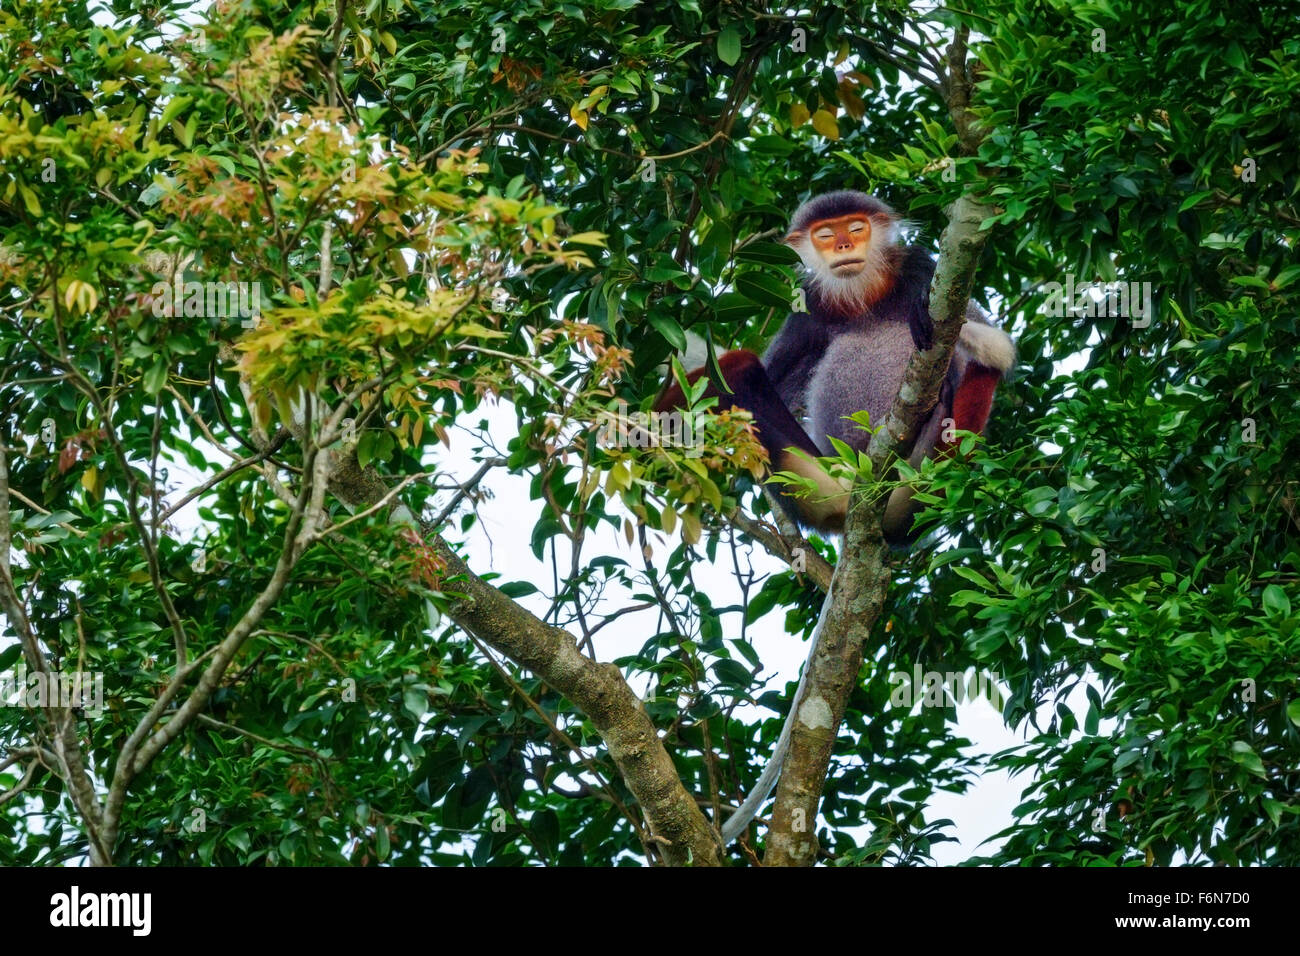 Adult male Red-shanked douc resting in the canopy at Son Tra nature reserve in Vietnam - Stock Image